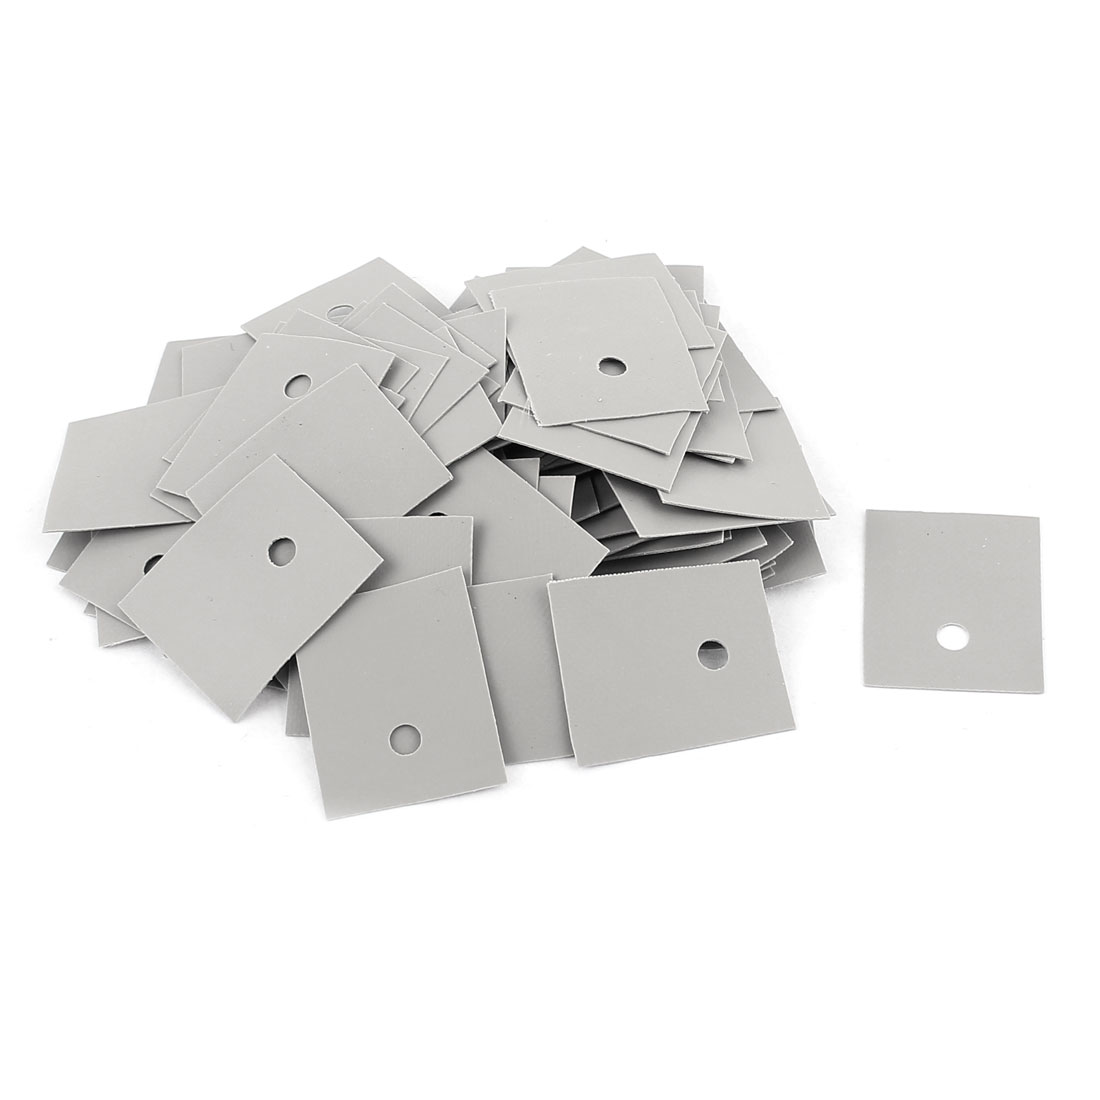 100 Pcs 22mm x 18mm x 0.2mm Silicone Insulation Pad Sheet Grey Tone